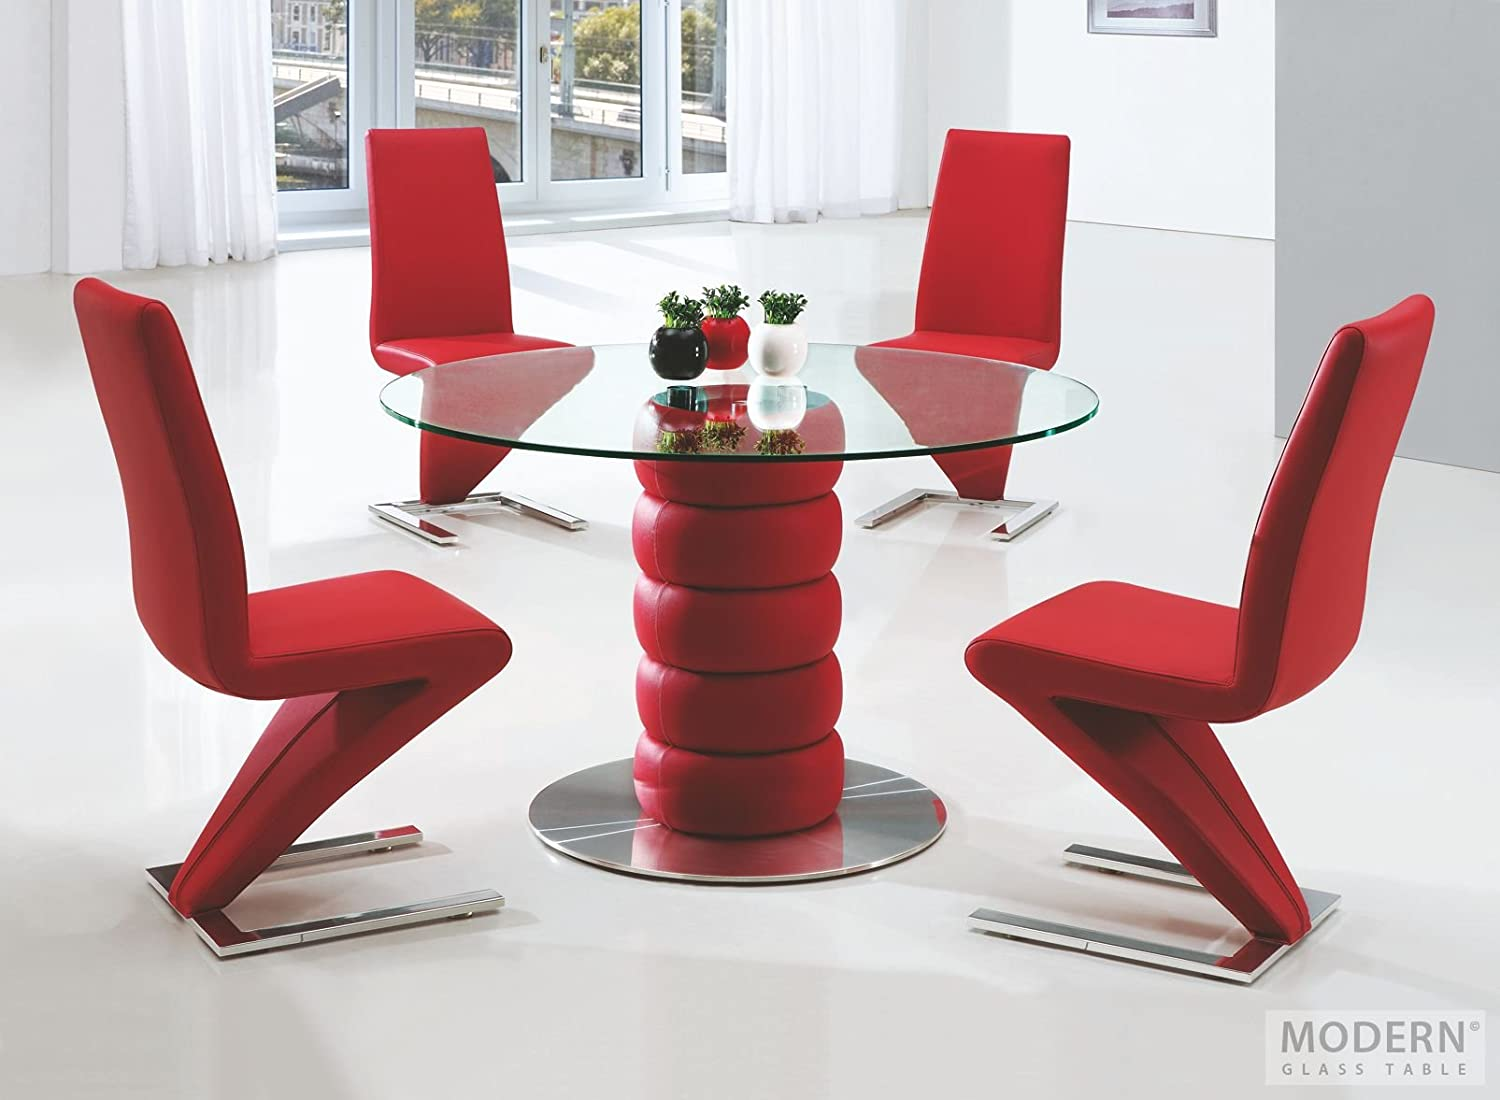 Zeta Round Glass Dining Table With 4 G632 Red Leather Dining Chairs Z Chairs Amazon Co Uk Kitchen Home